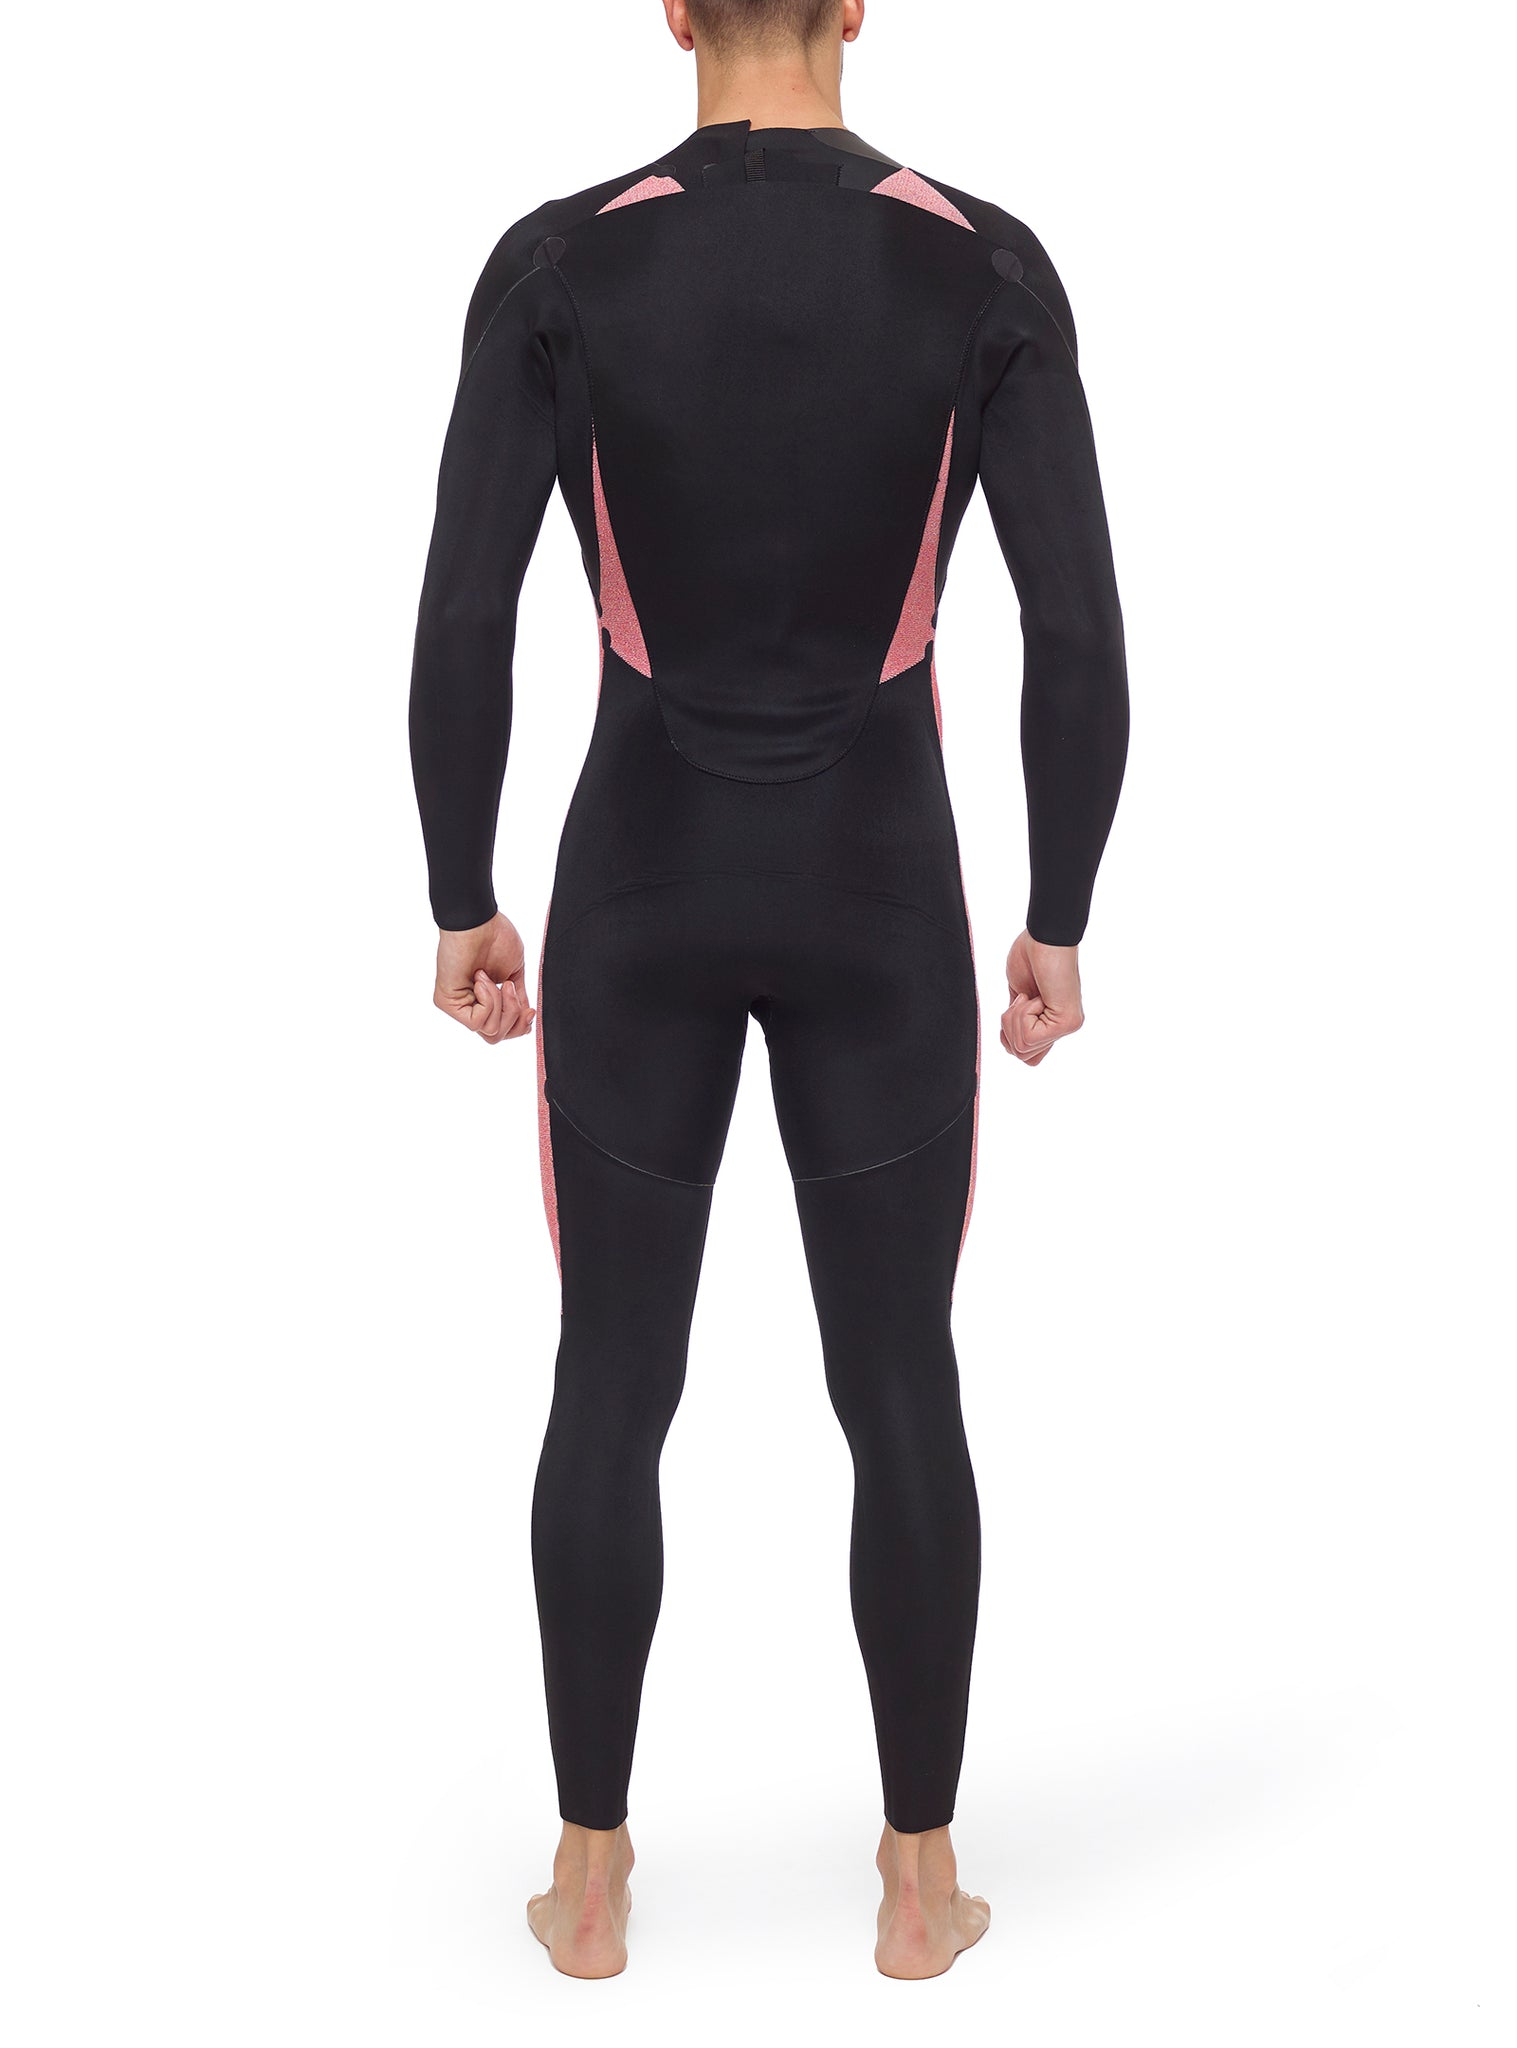 Wetsuit Man Performance 4/3 Back Zip Black